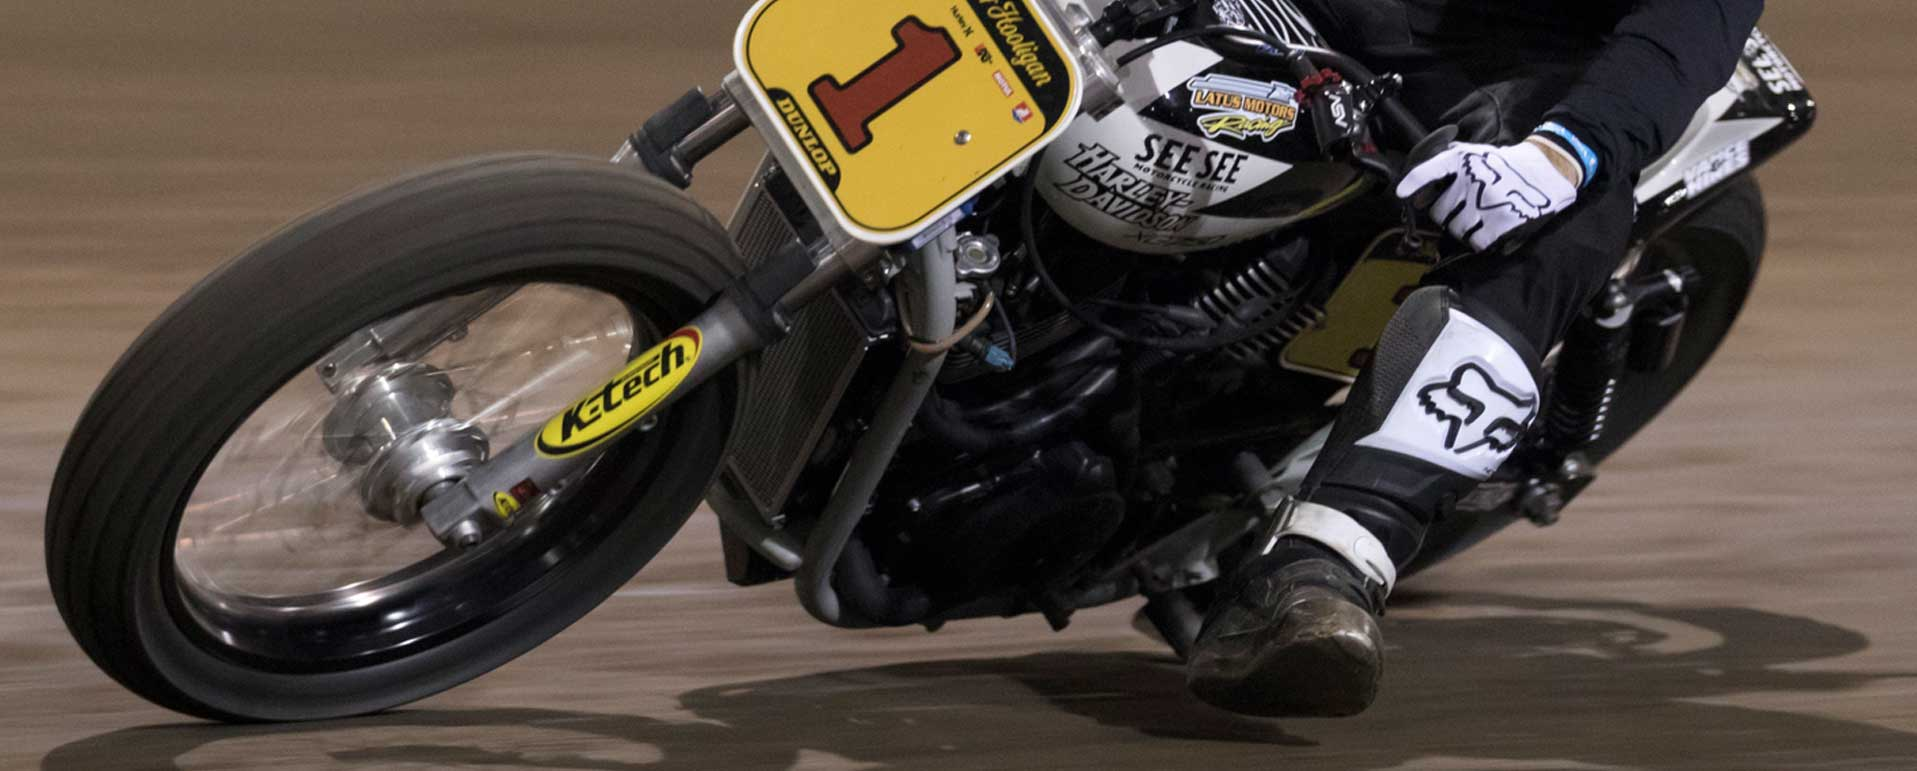 Salem, Oregon The 1 Pro motorcycle flat track racing round 1 of Super Hooligan National Championship and put on by The 1 Pro Moto Show in Portland rider is Andy DiBrino, 2017 Super Hooligan National Champion